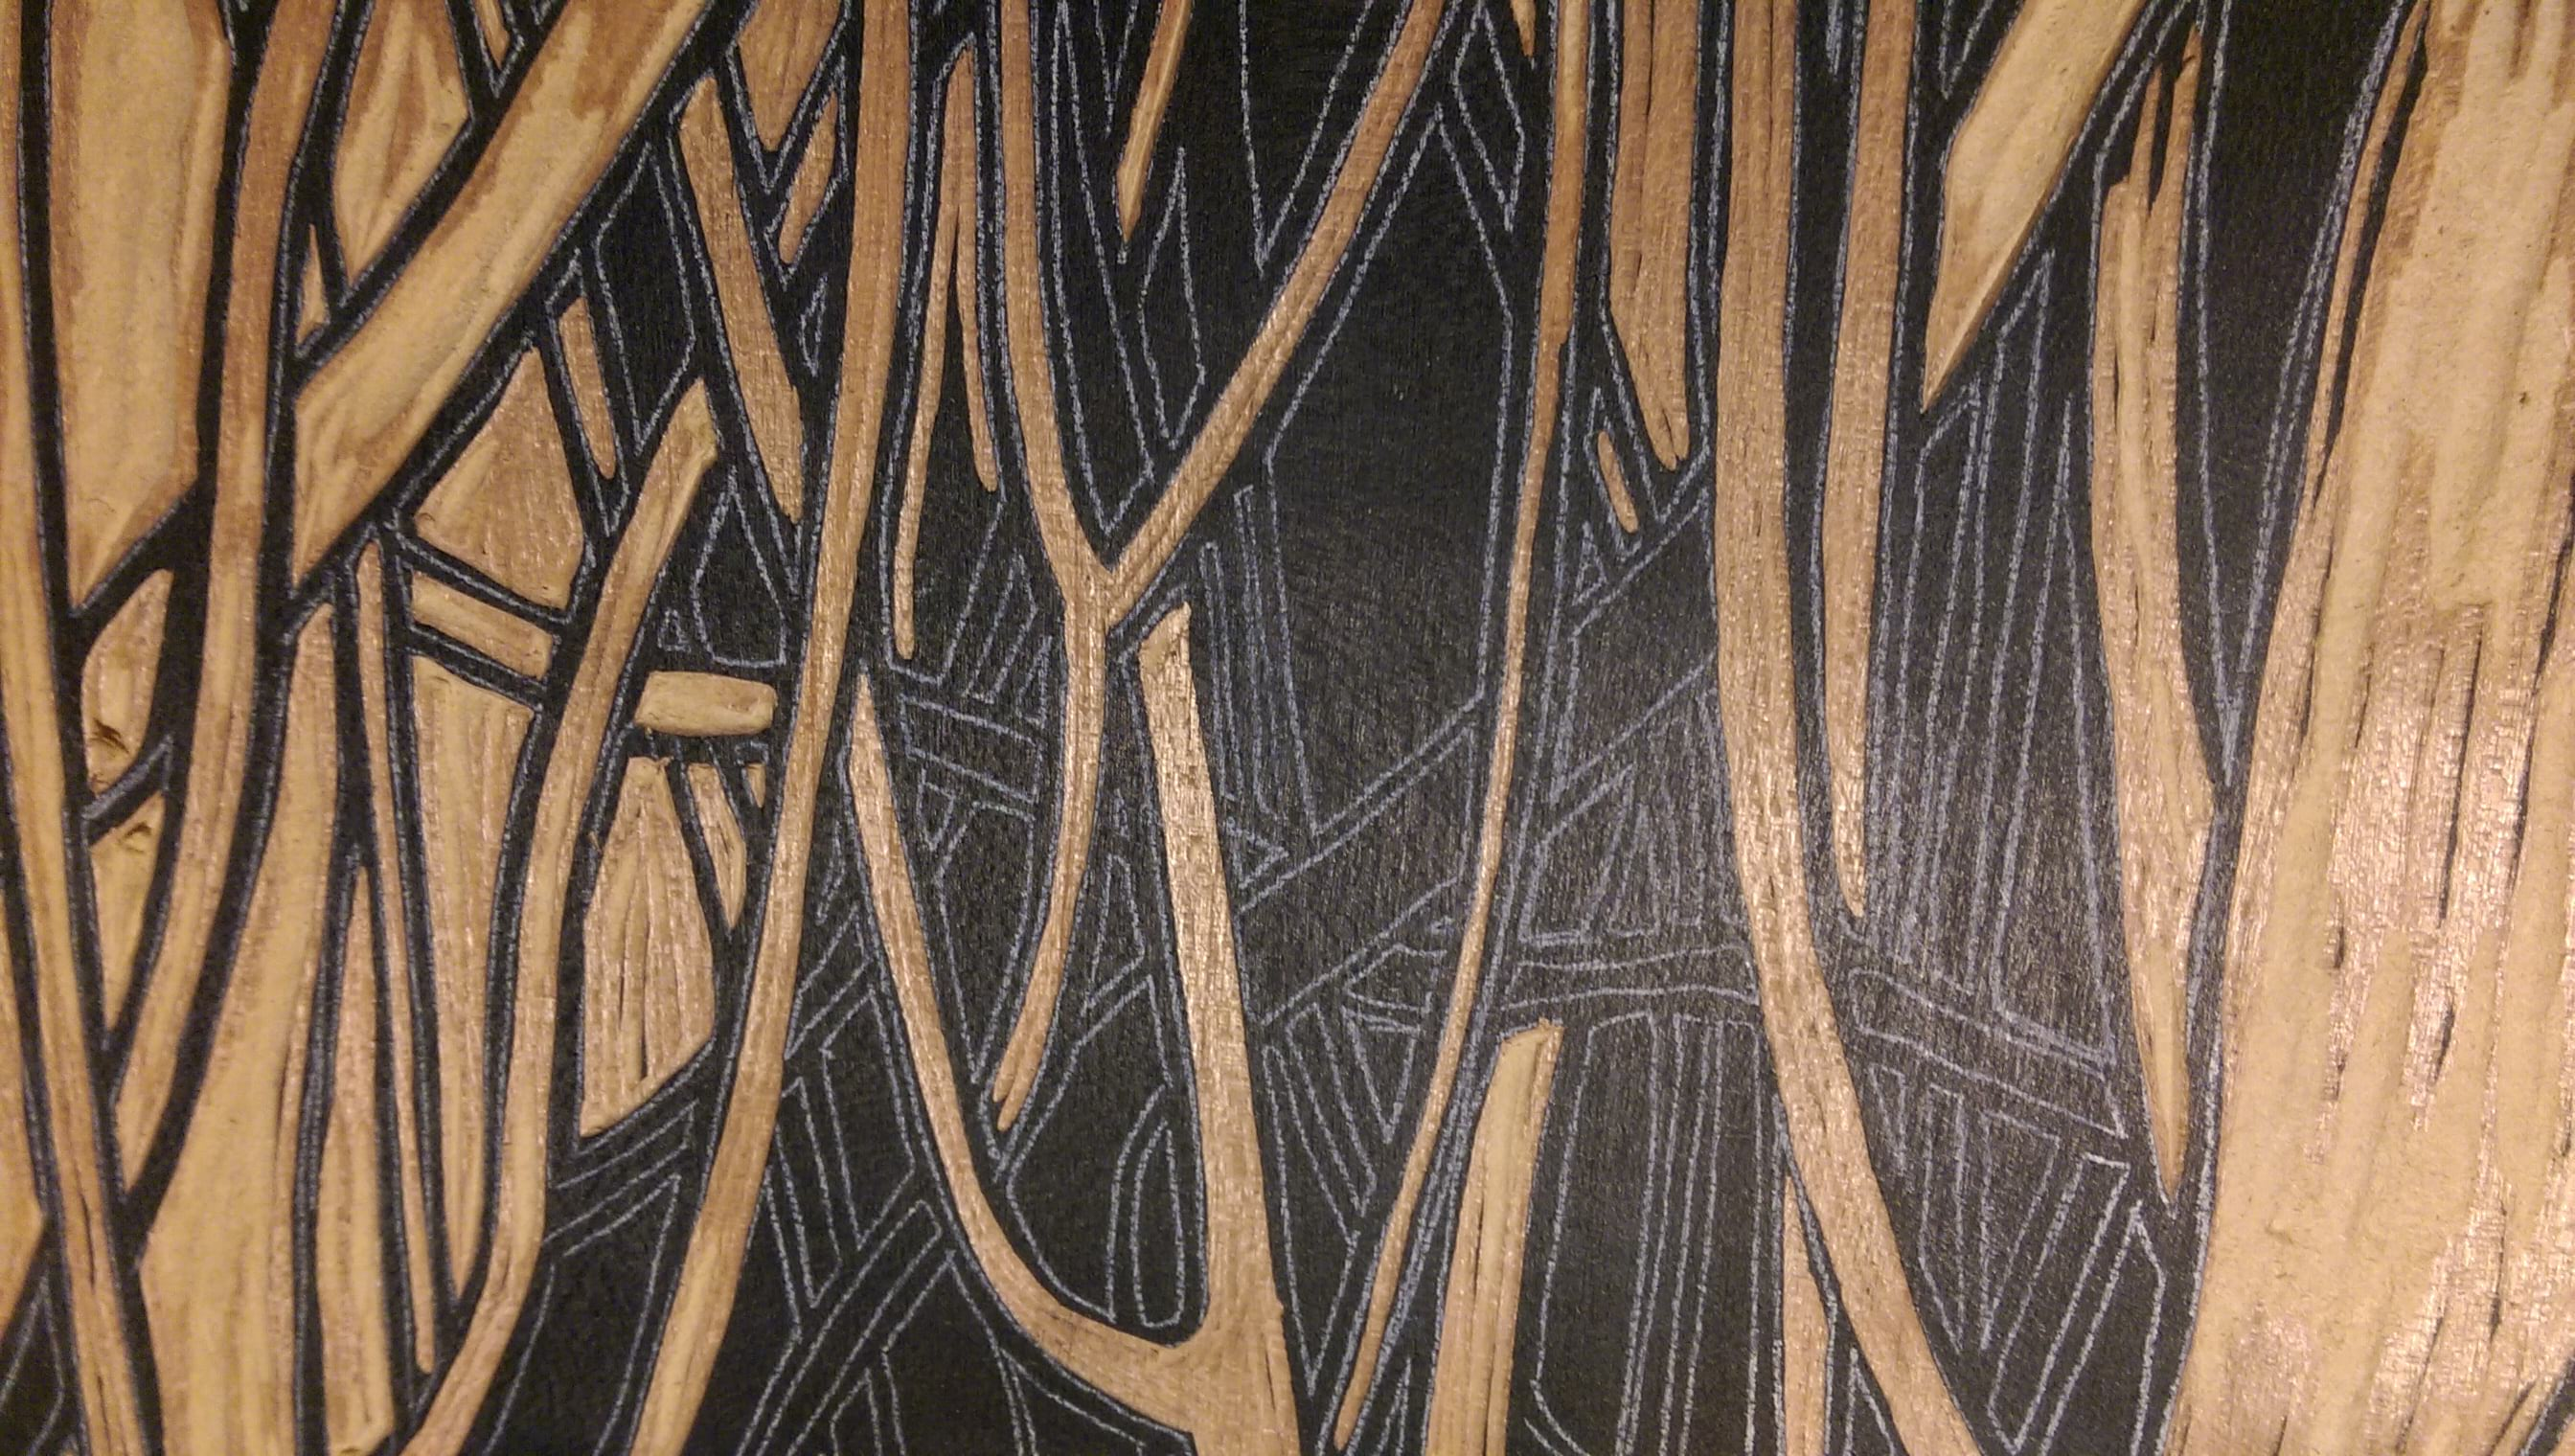 A woodcut in progress, showing white traced lines.